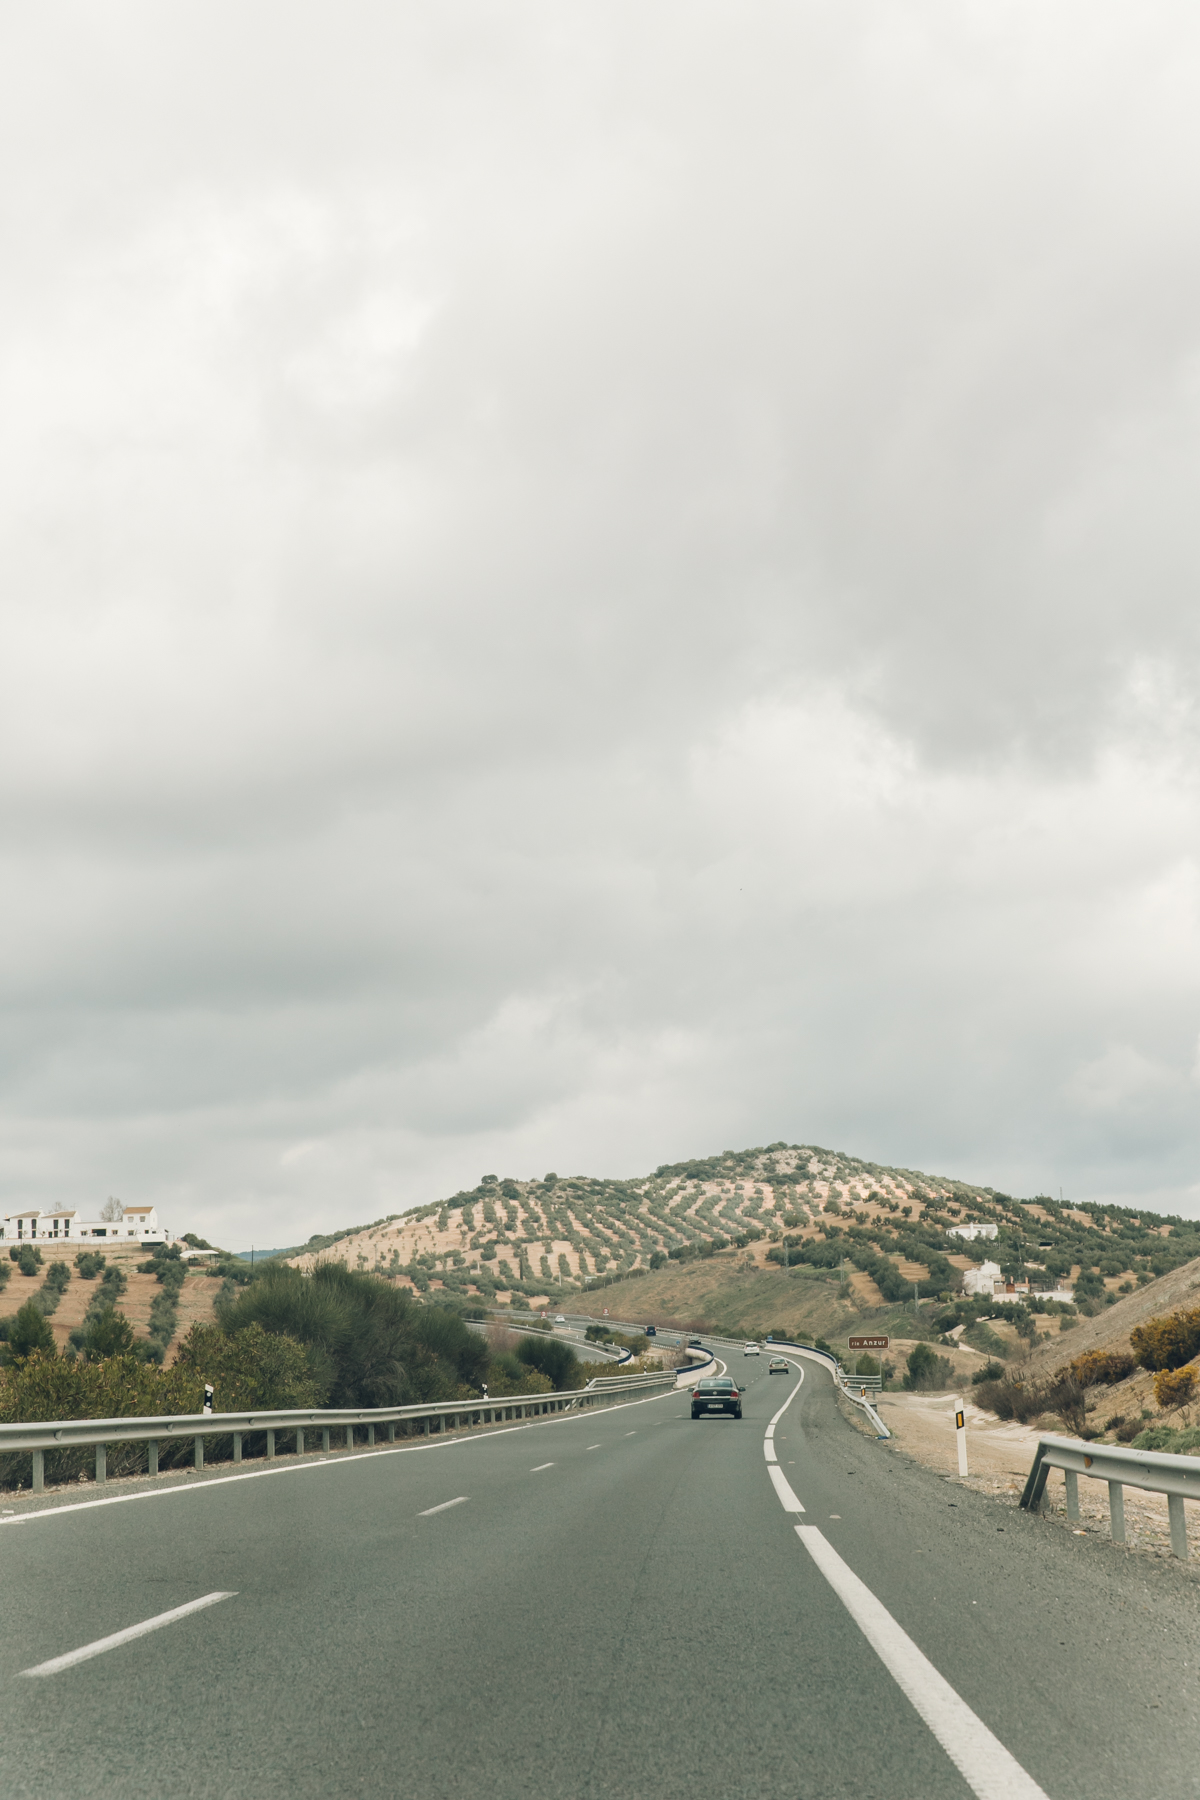 Winding roads through the hills in Andalusia, Spain.